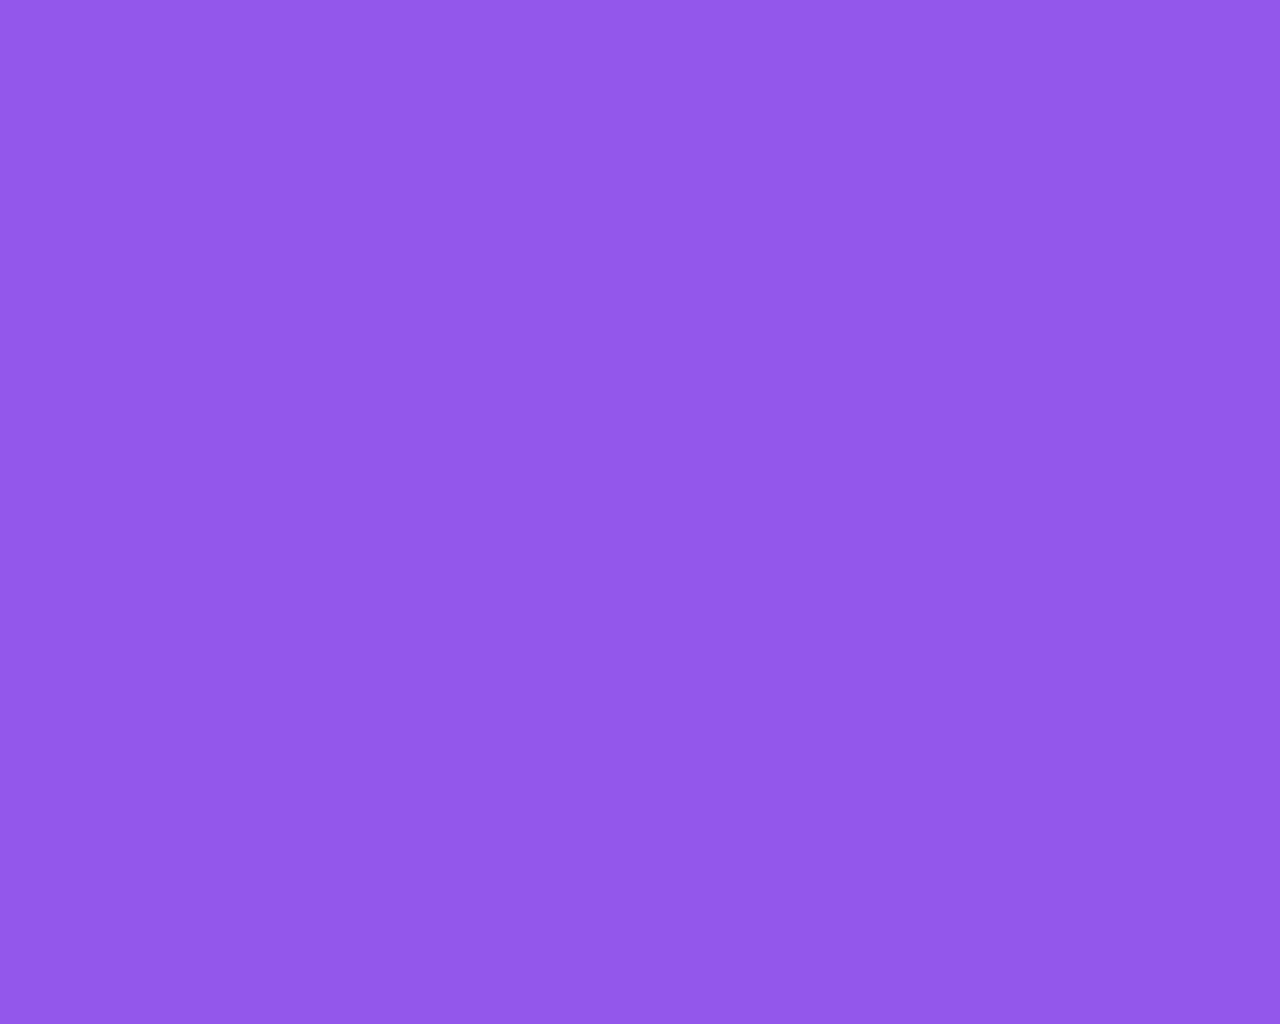 1280x1024 Lavender Indigo Solid Color Background